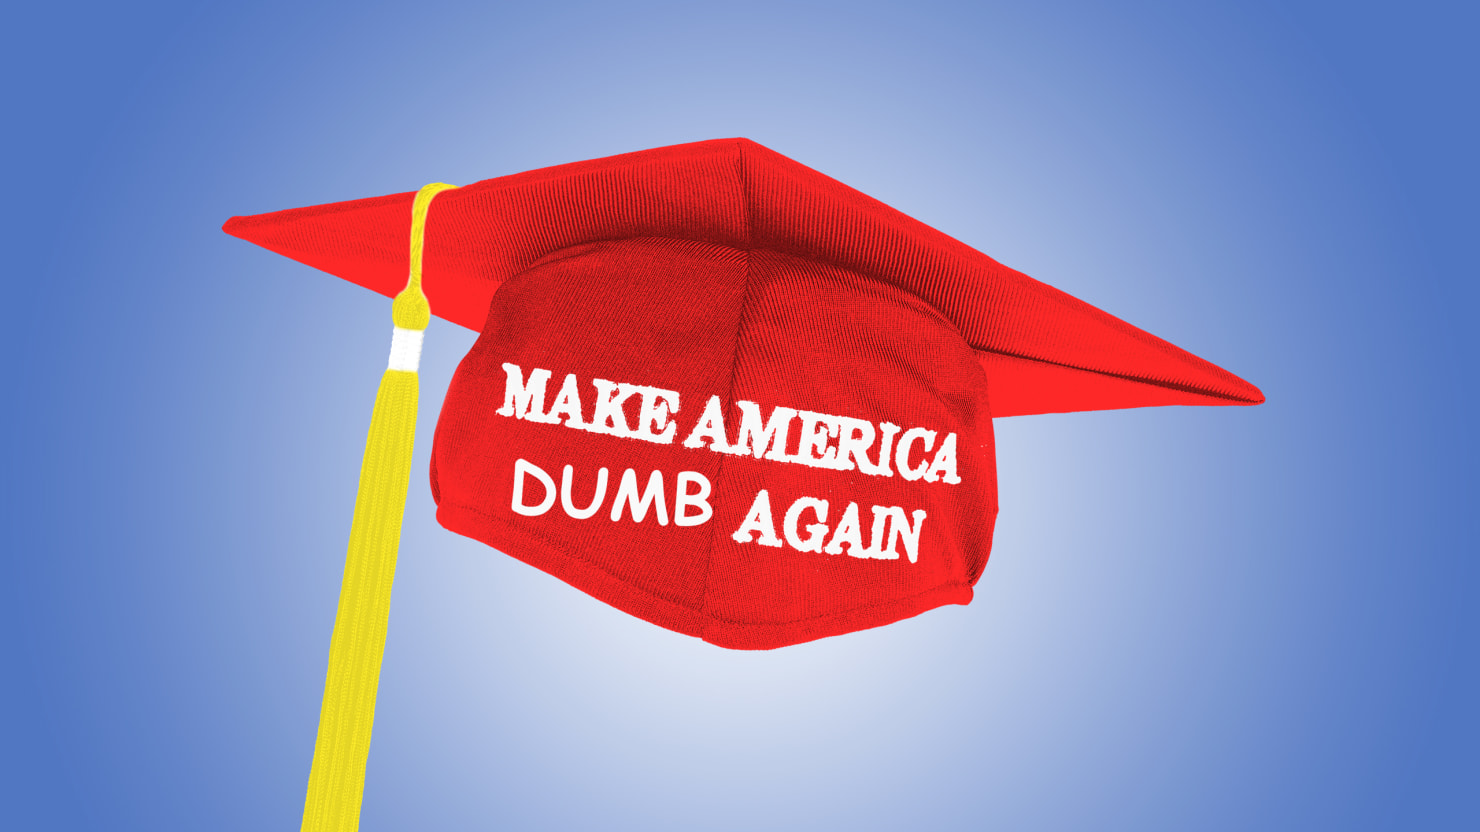 Trump University Hired Motivational Speakers and a Felon as Faculty